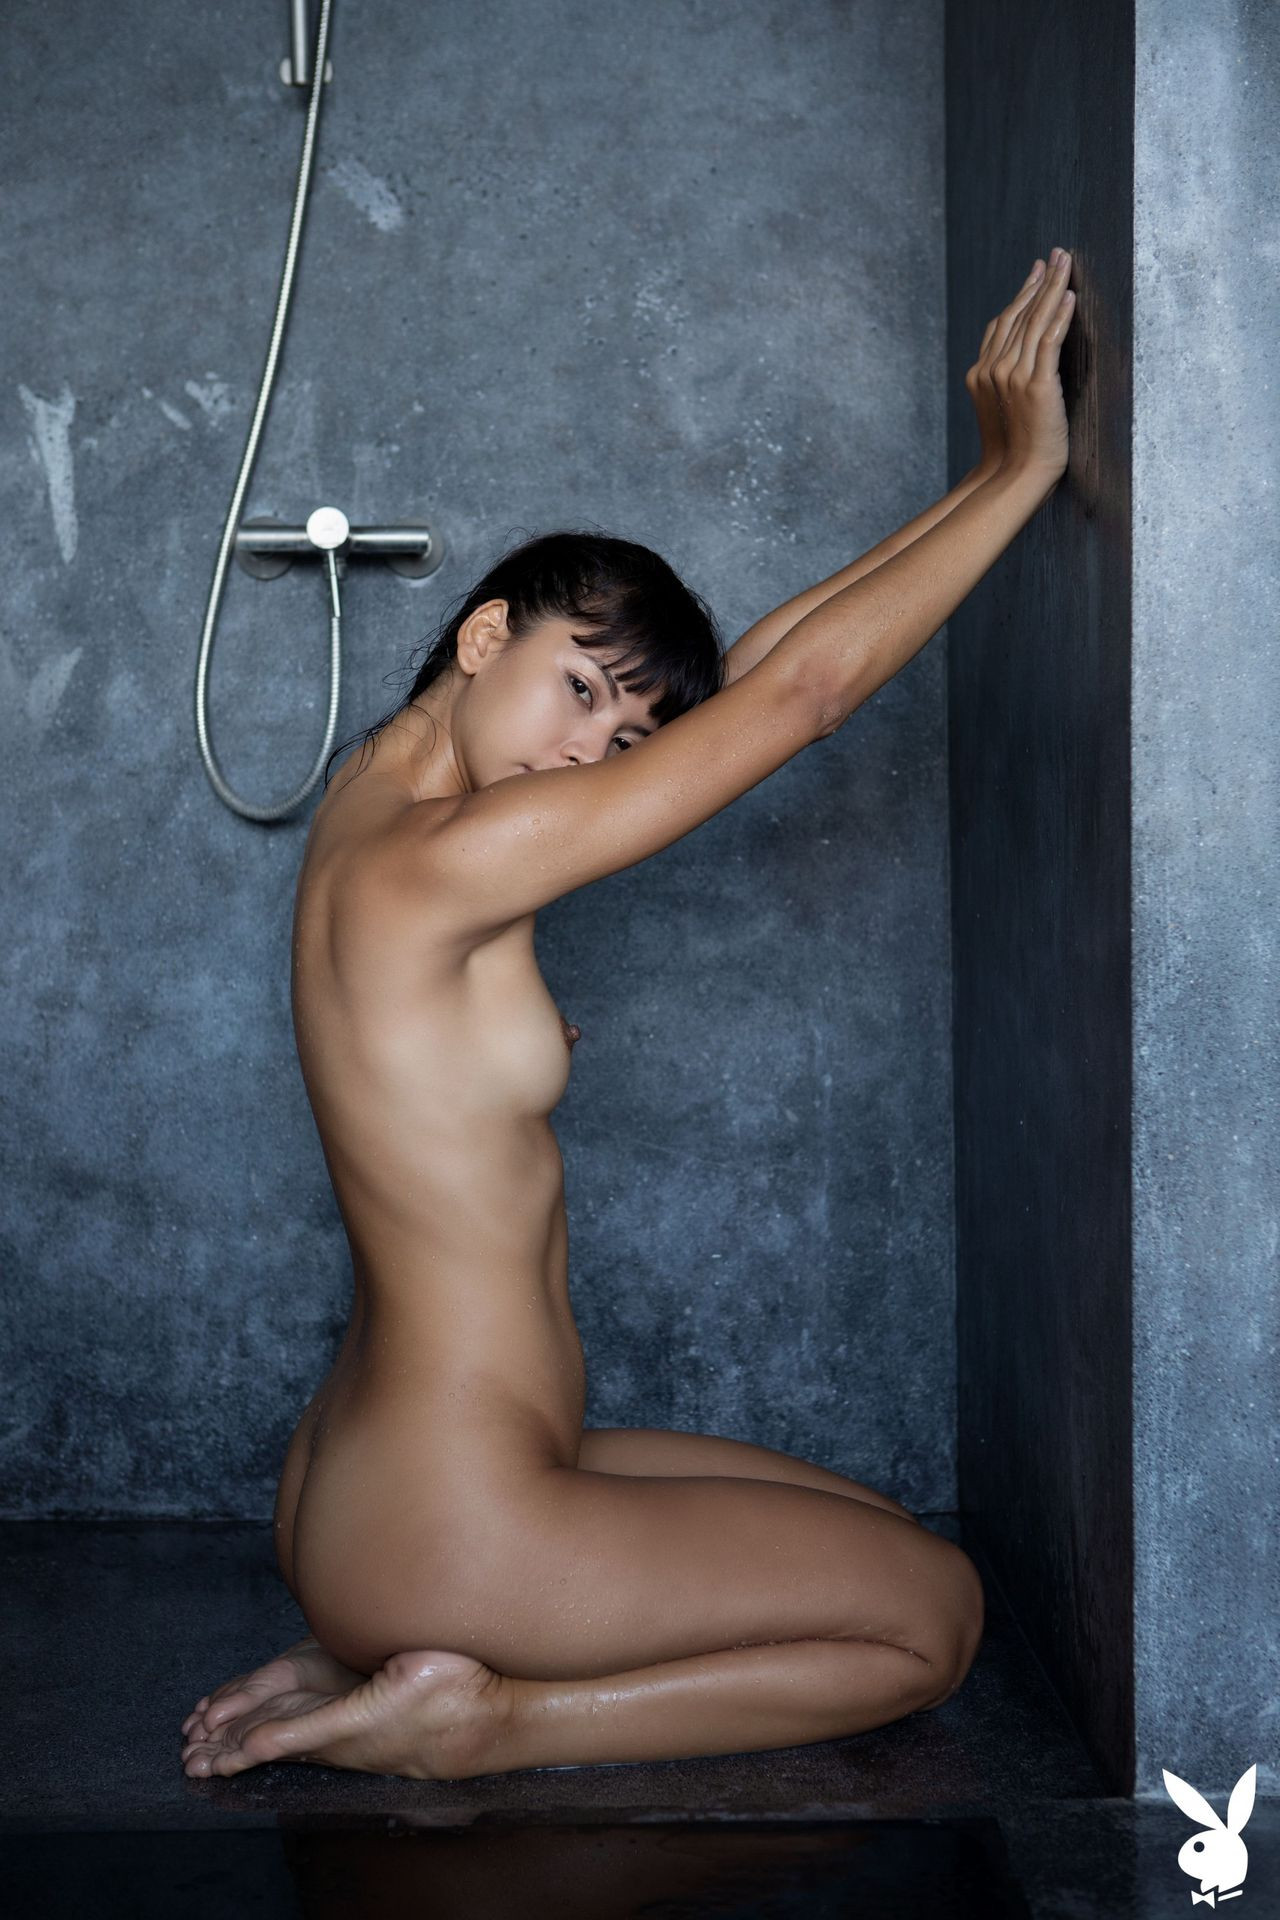 Cara Pin Nude Soft Shower thefappening.nu 20